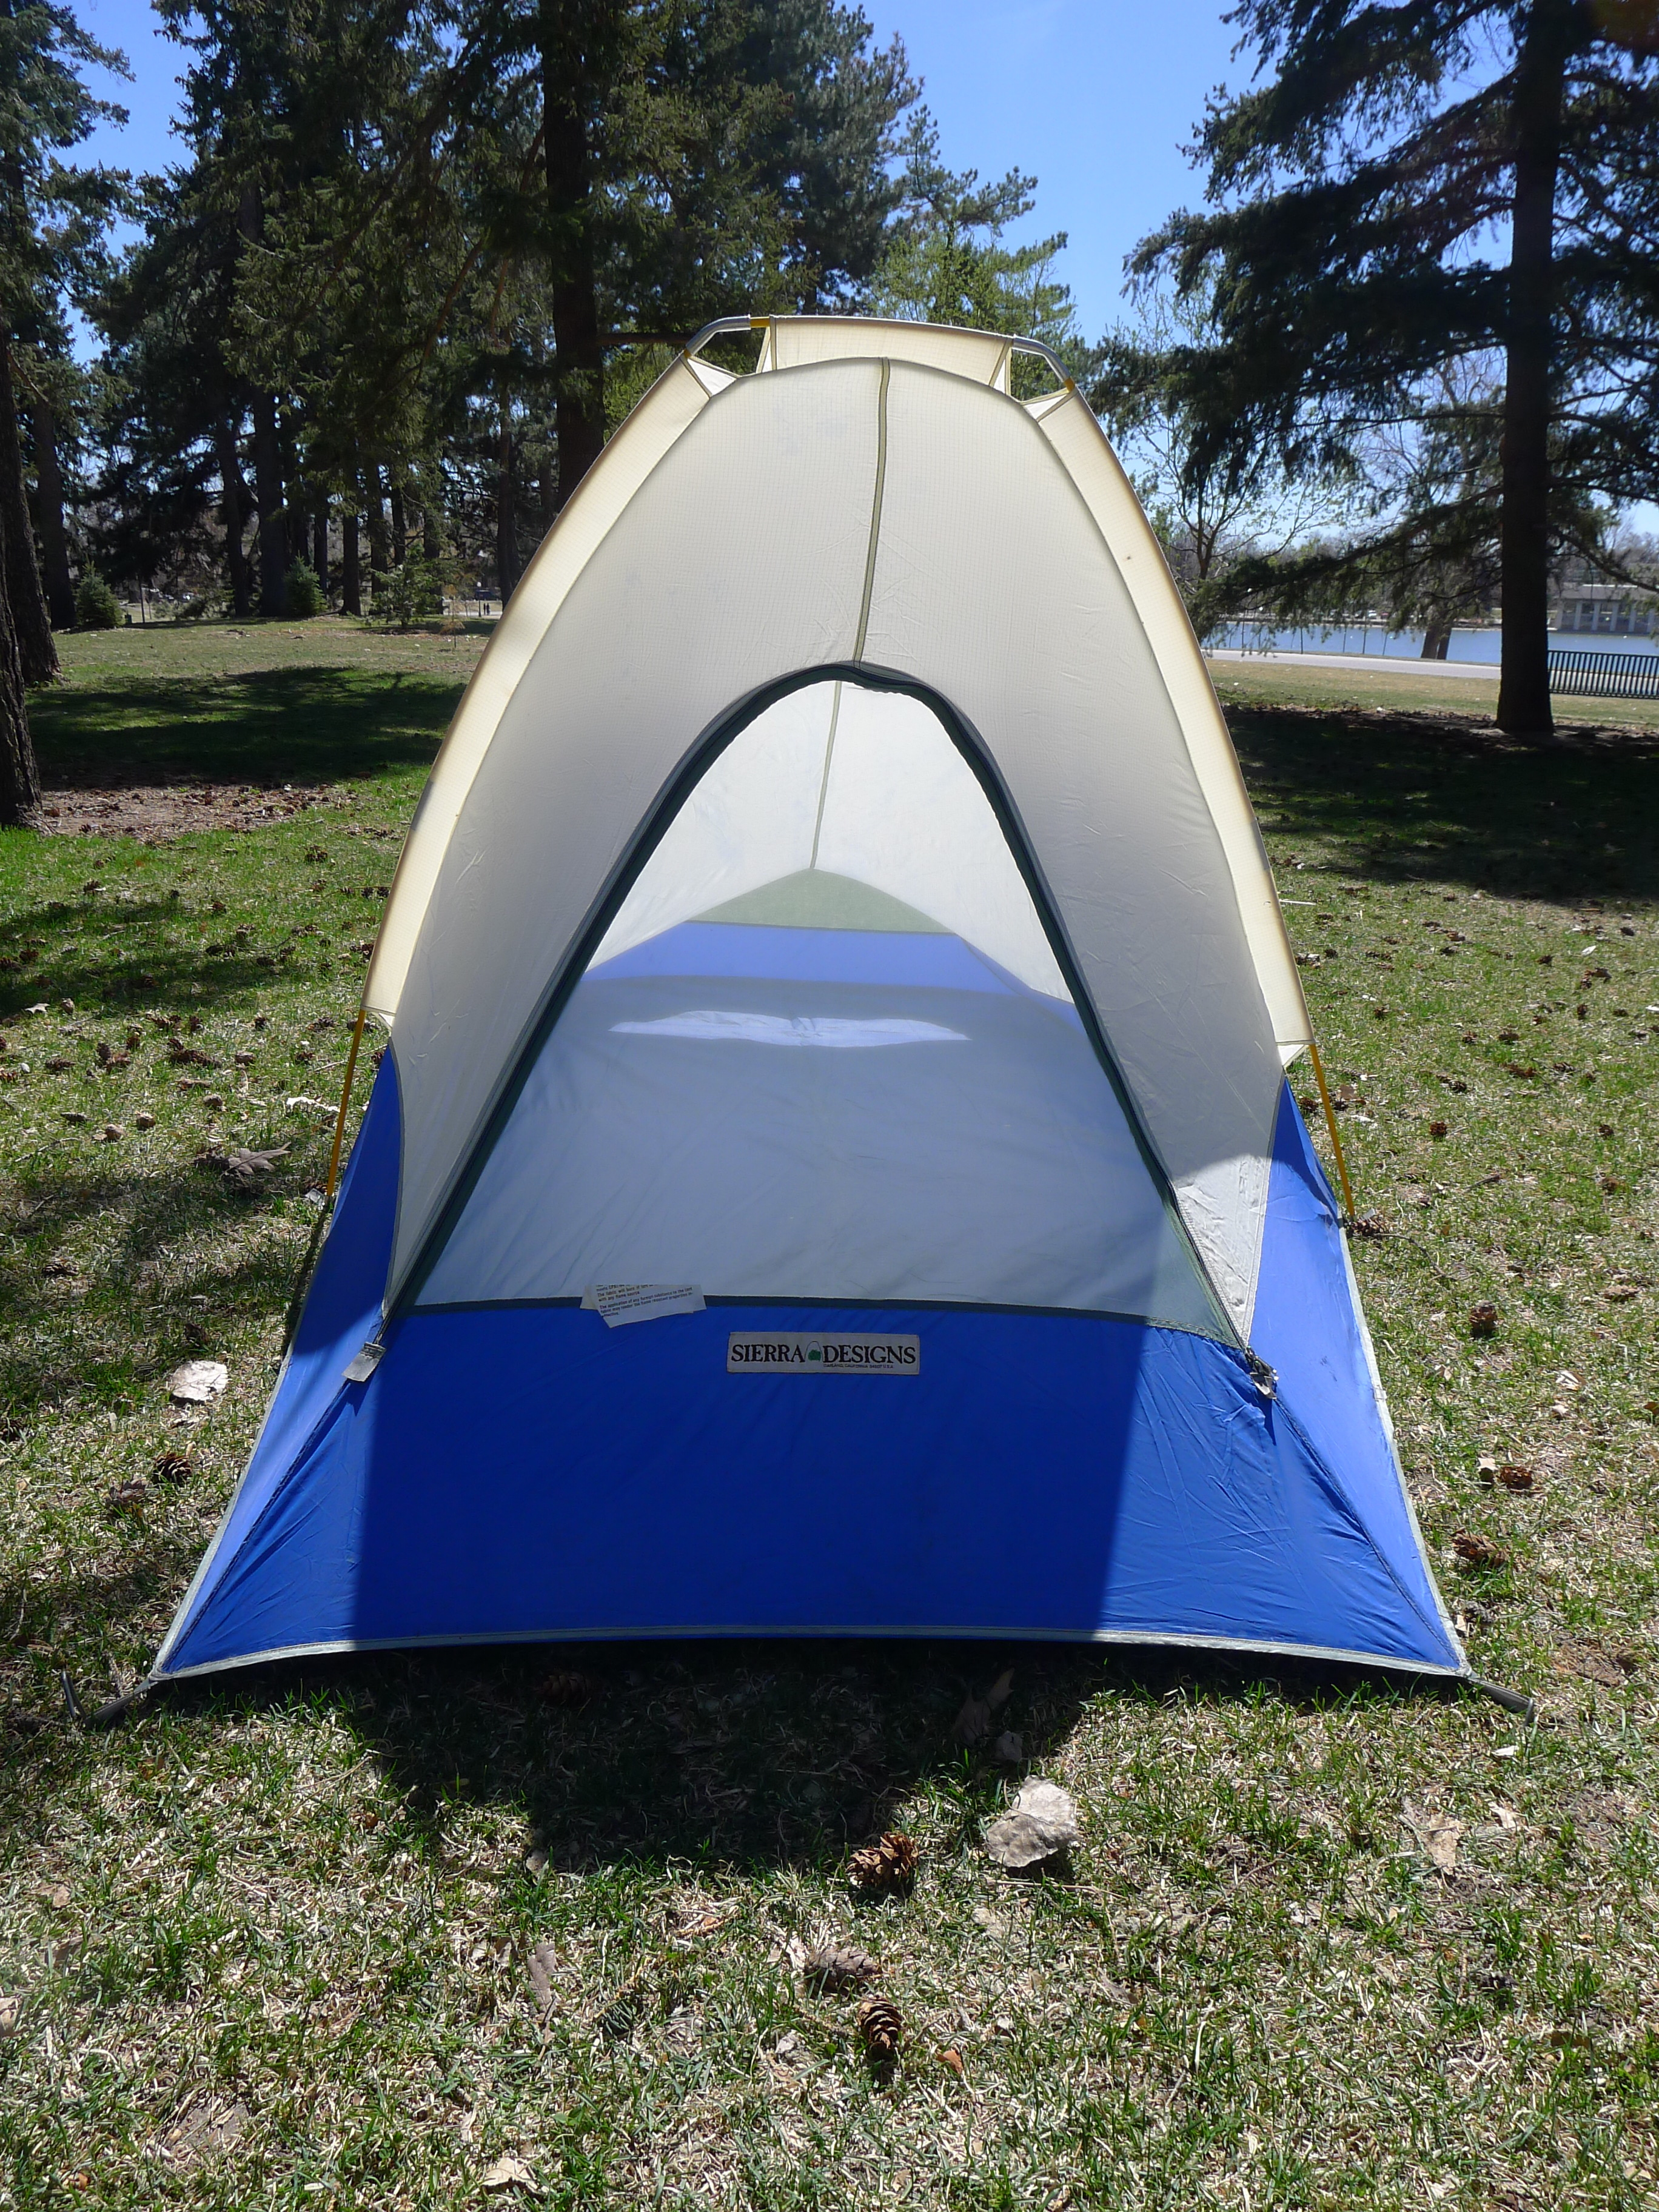 Vintage Sierra Designs single Man Backpacking Tent u2013 Oakland CA Made in the USA : backpacking tents made in usa - memphite.com